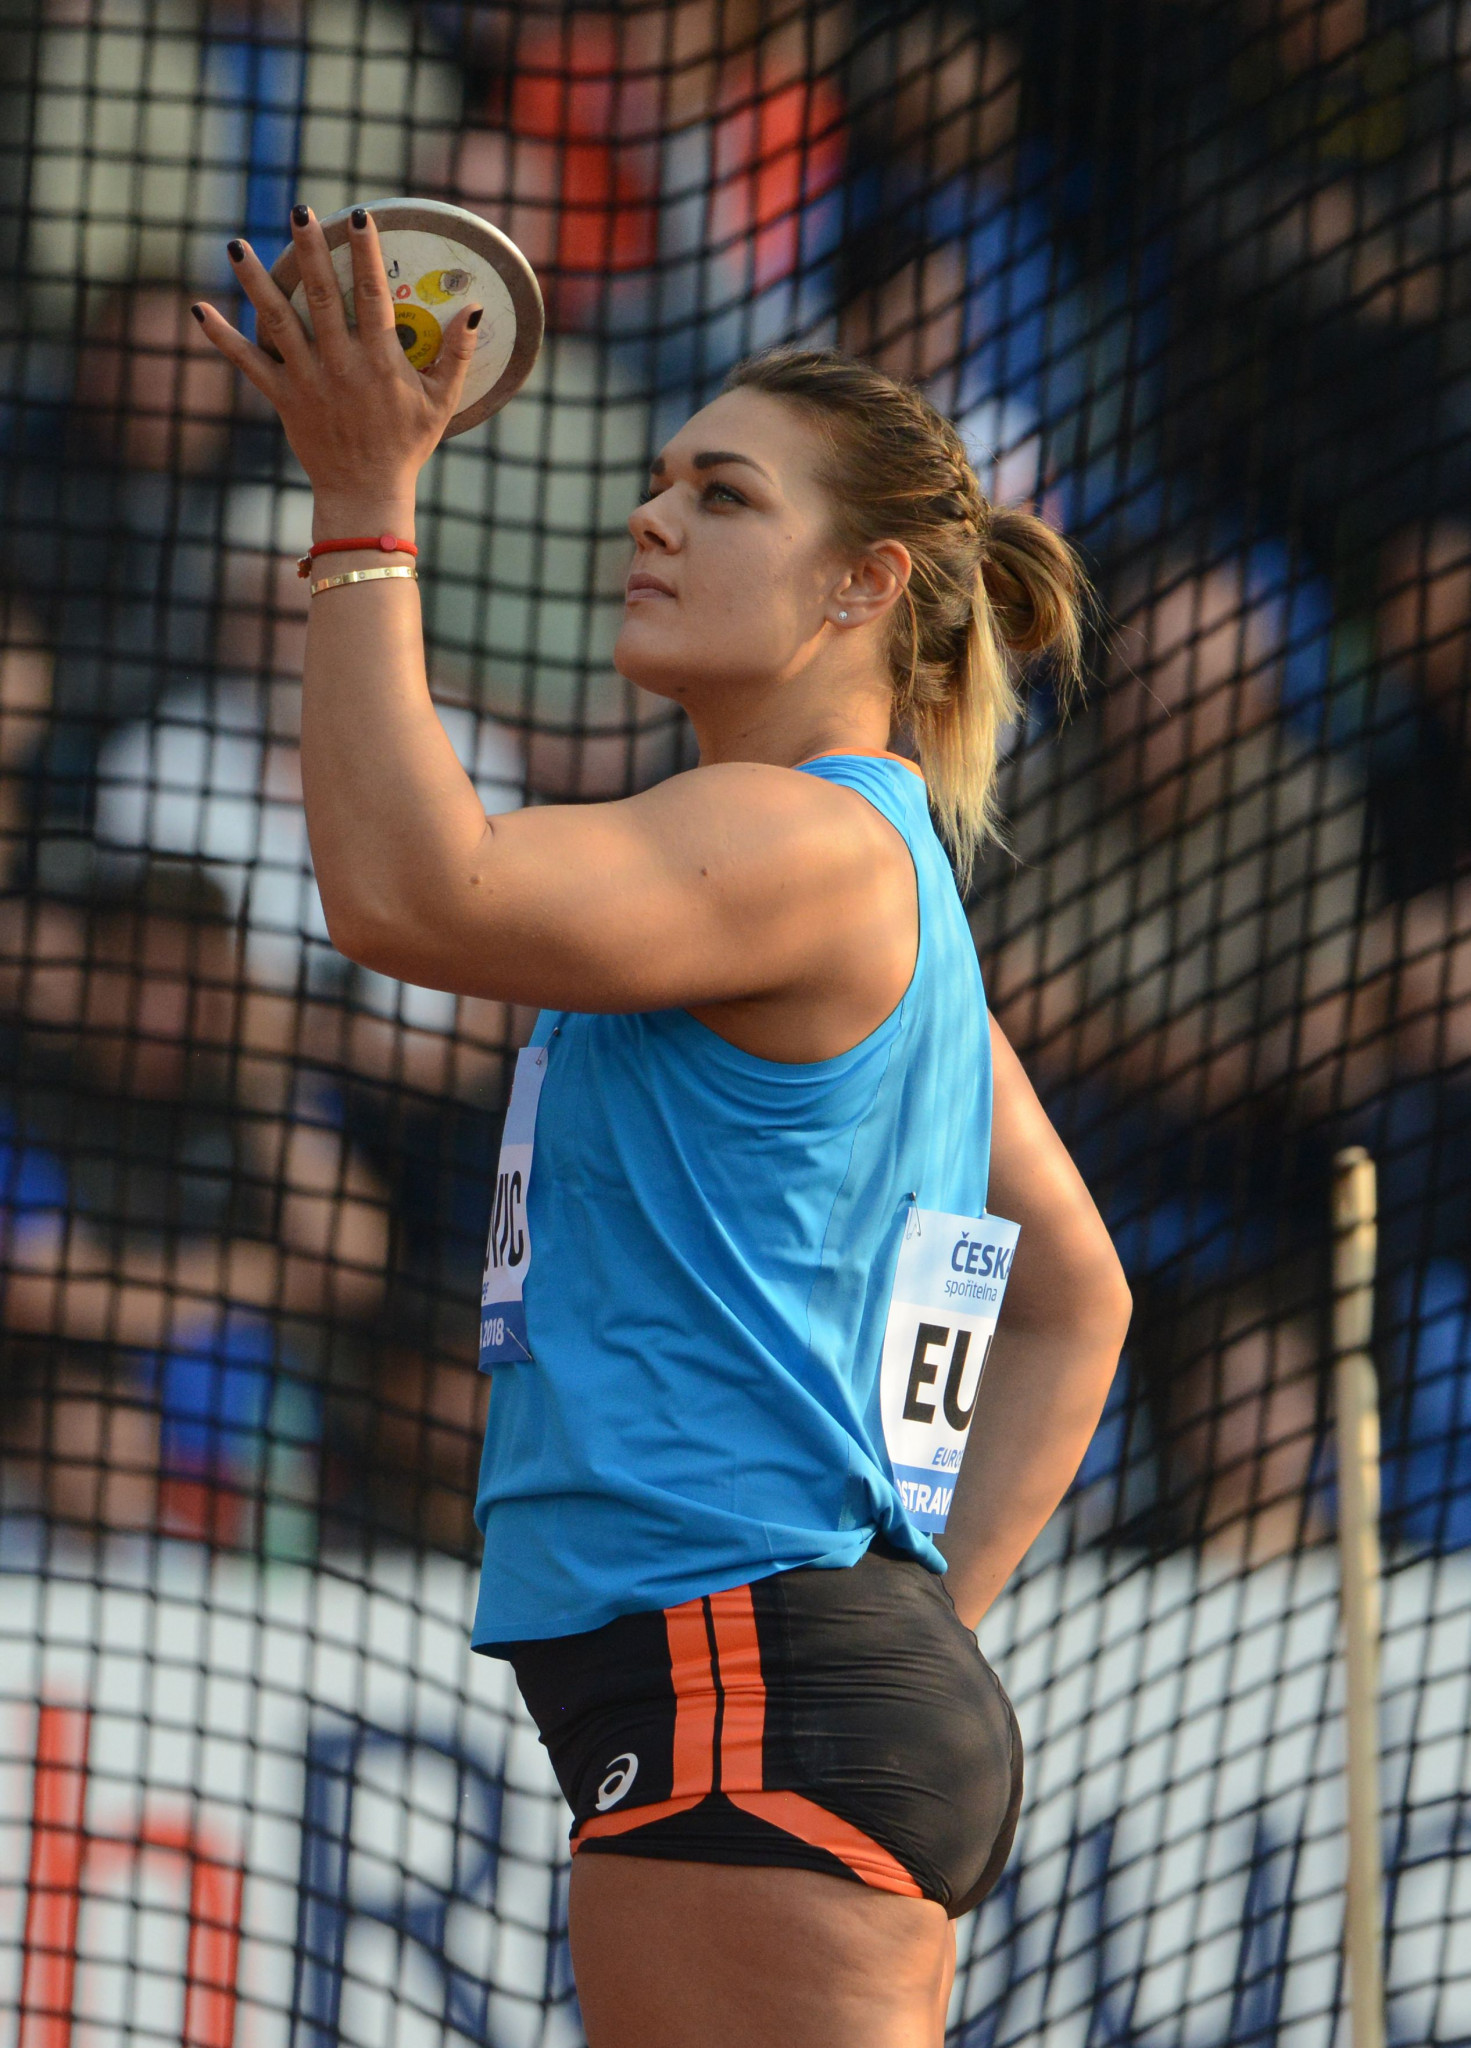 Croatia's world and Olympic discus champion Sandra Perkovic has strong views on what is and is not correct about her sport ©Getty Images